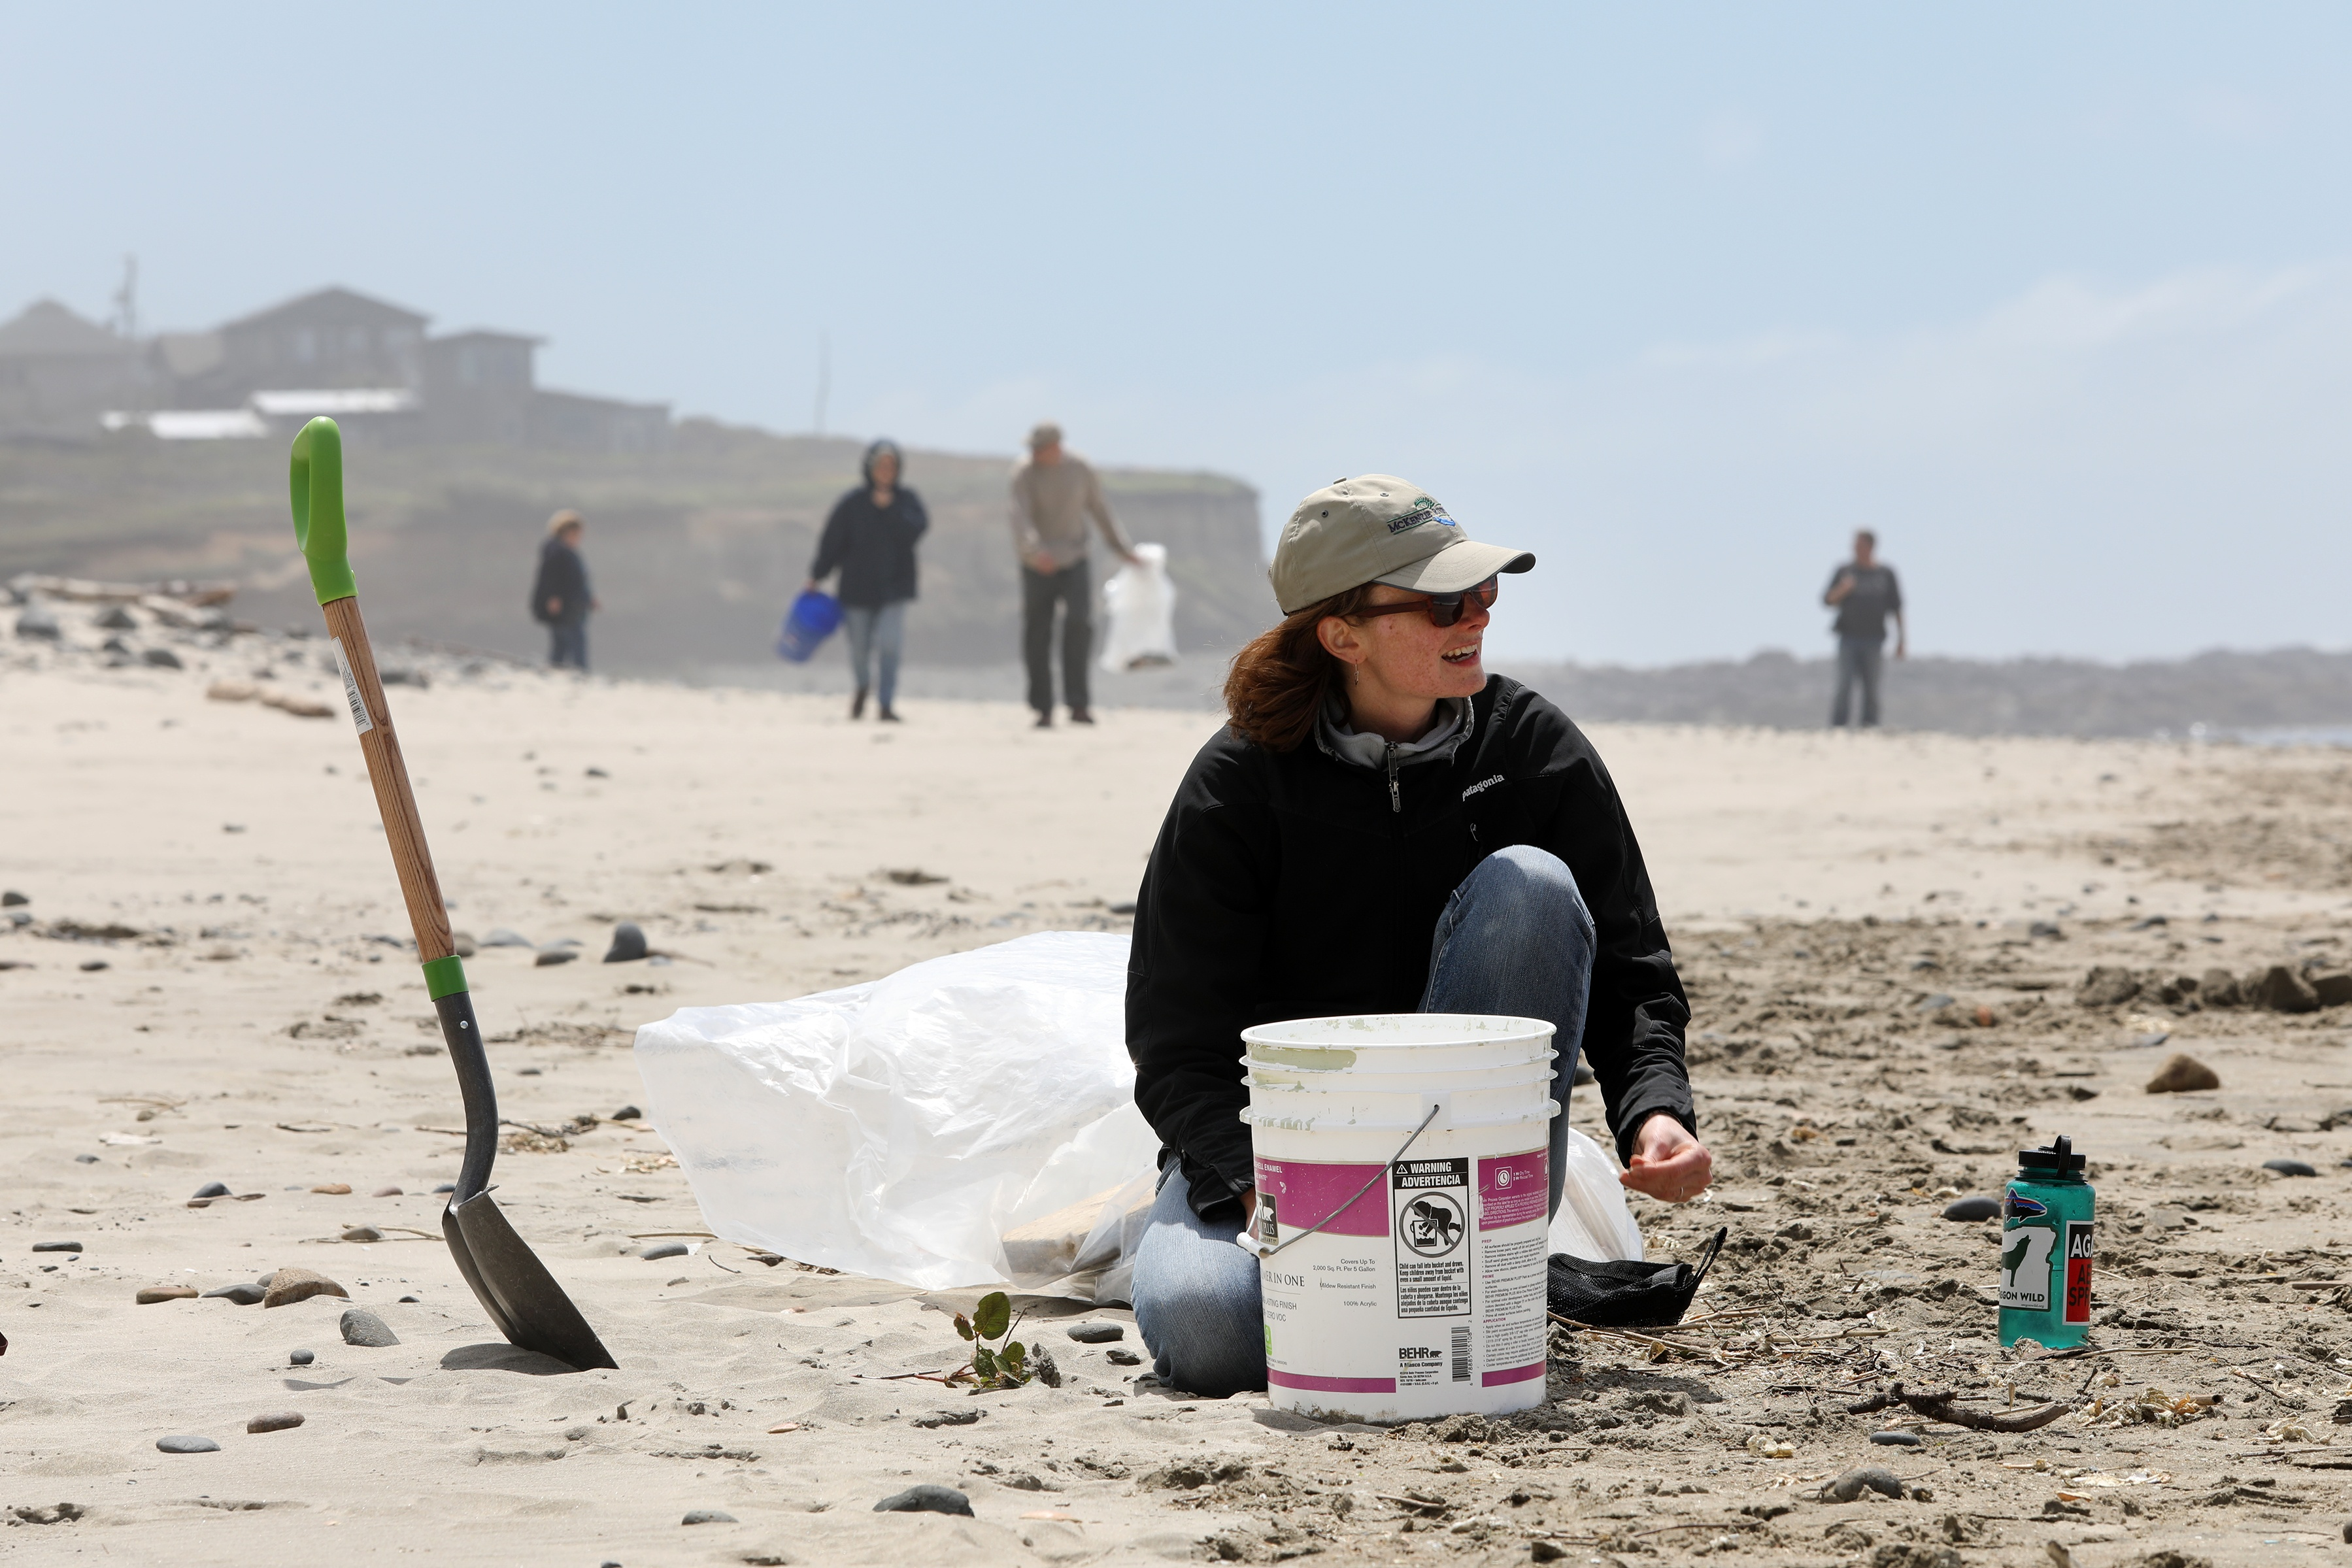 Woman on beach cleaning up trash with volunteer team